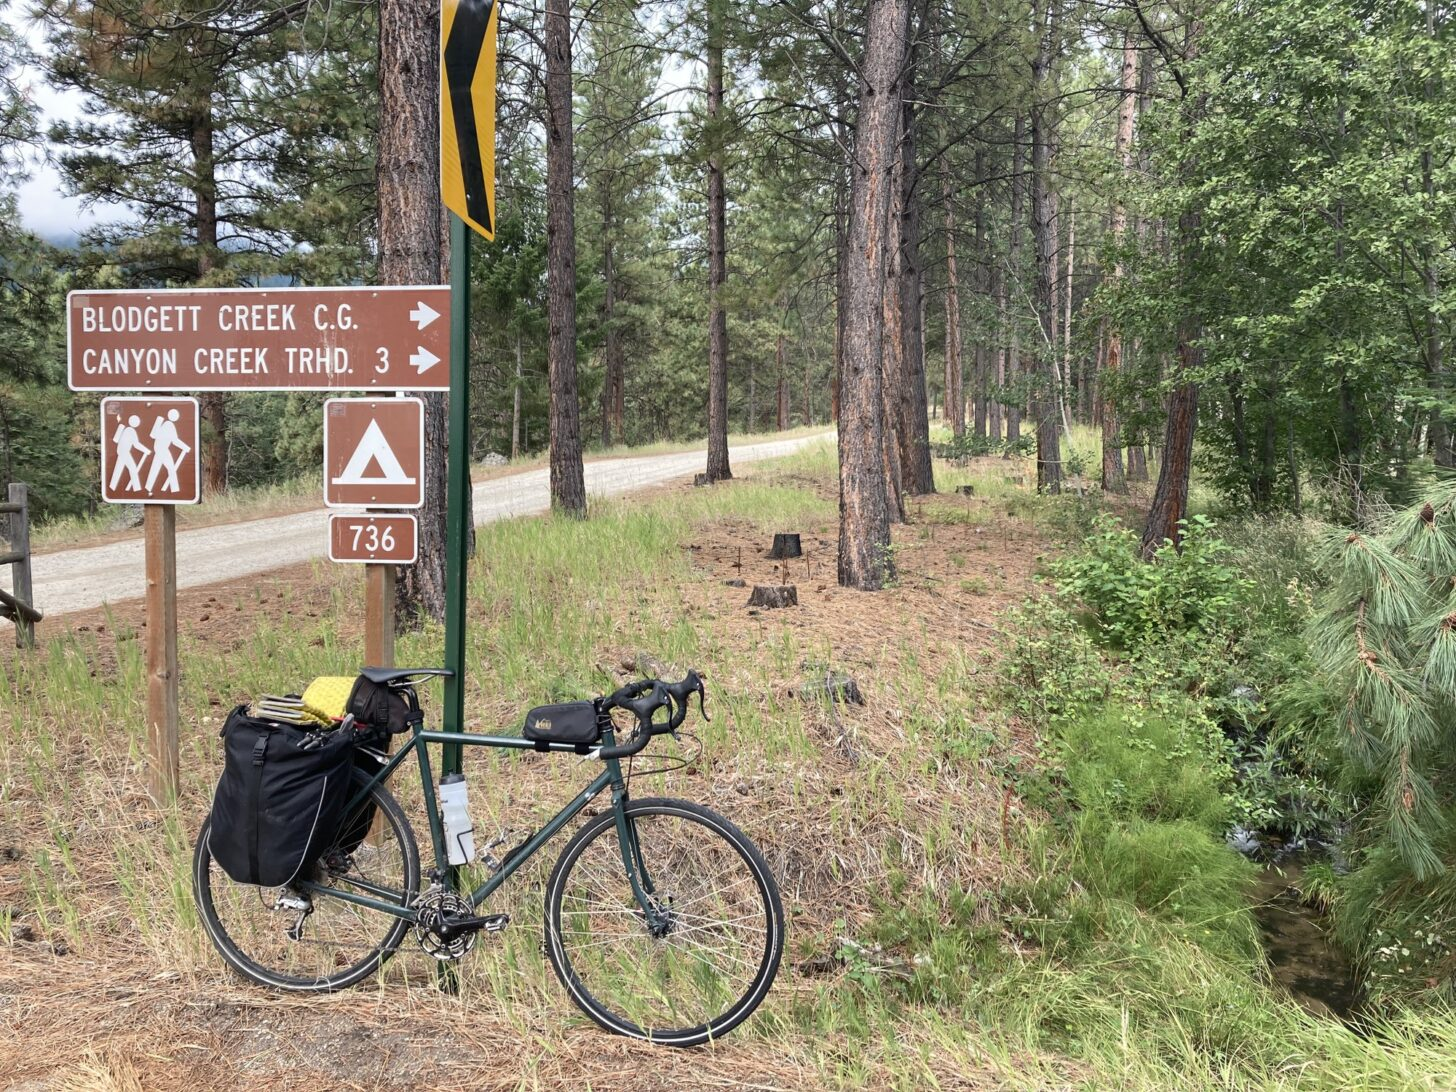 a road bike loaded down with backpacking gear leans up against a road sign pointing the way towards a trailhead